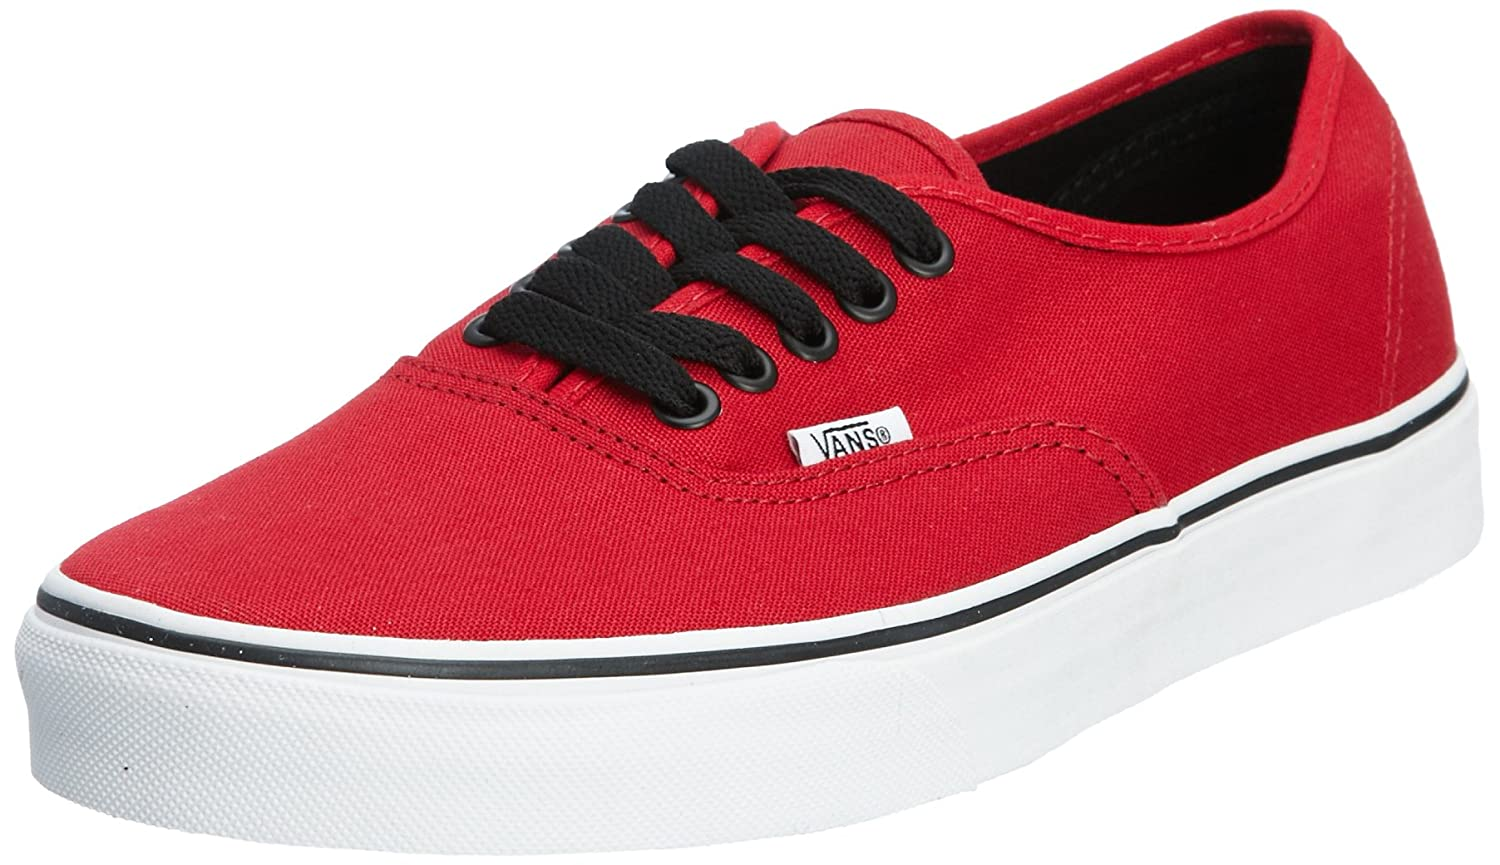 [バンズ] VANS VANS AUTHENTIC VEE3 B01MYQ2KLH 5.5 B(M) US Women / 4 D(M) US Men|Chili Pepper/Black Chili Pepper/Black 5.5 B(M) US Women / 4 D(M) US Men